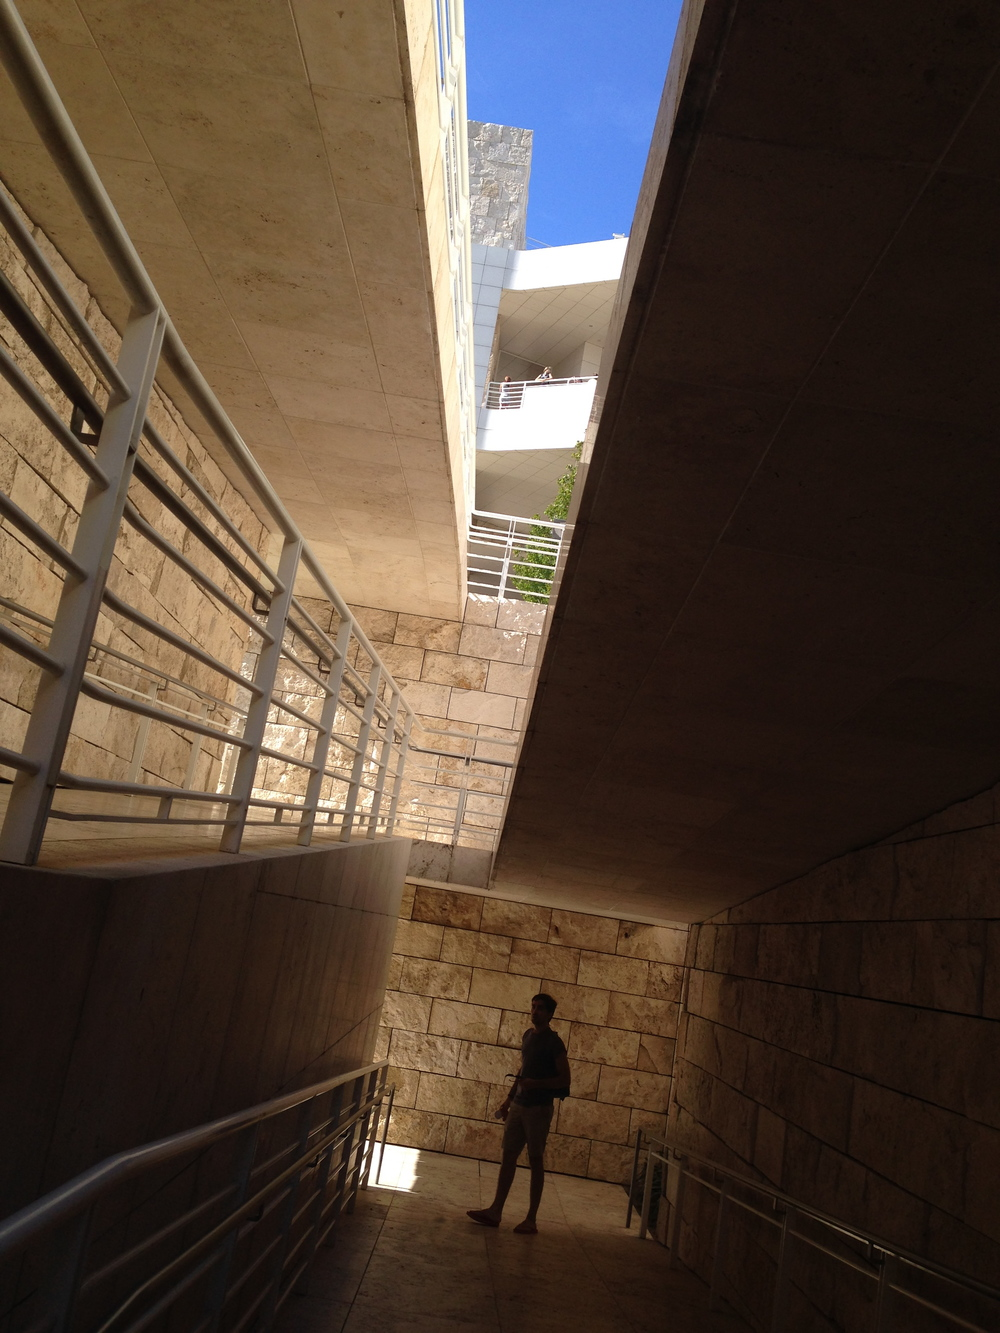 Getty Museum, LA, CA, 8/24/14